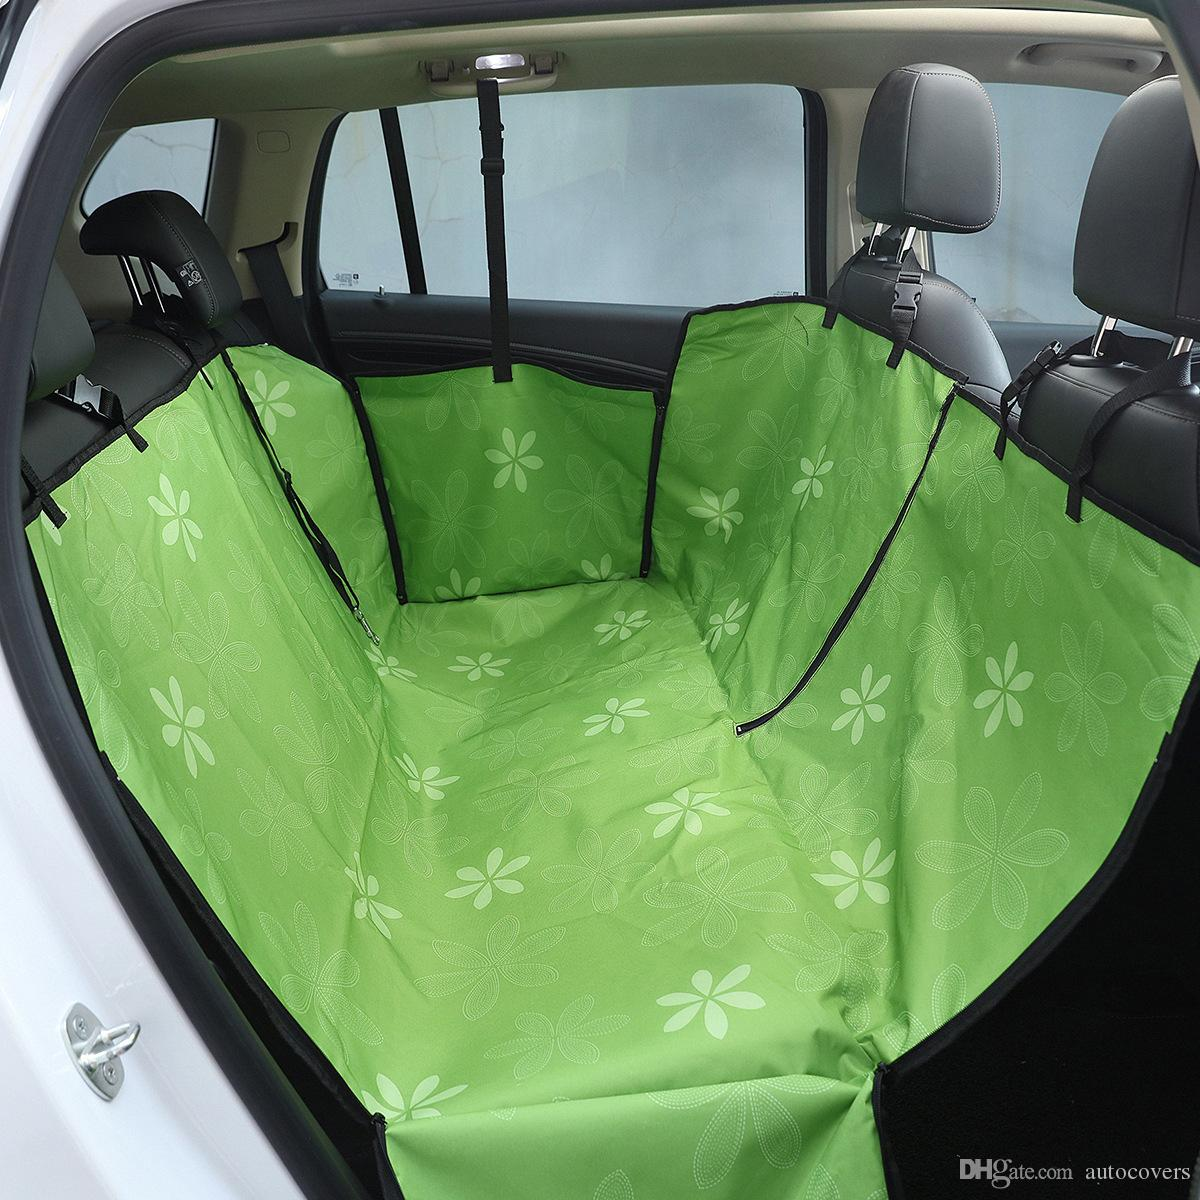 Car Pet Seat Cover For Cat Dog Safety Pet Waterproof Hammock Blanket Cover Mat Car Interior Travel Accessories Oxford Car Seat Covers Nylon